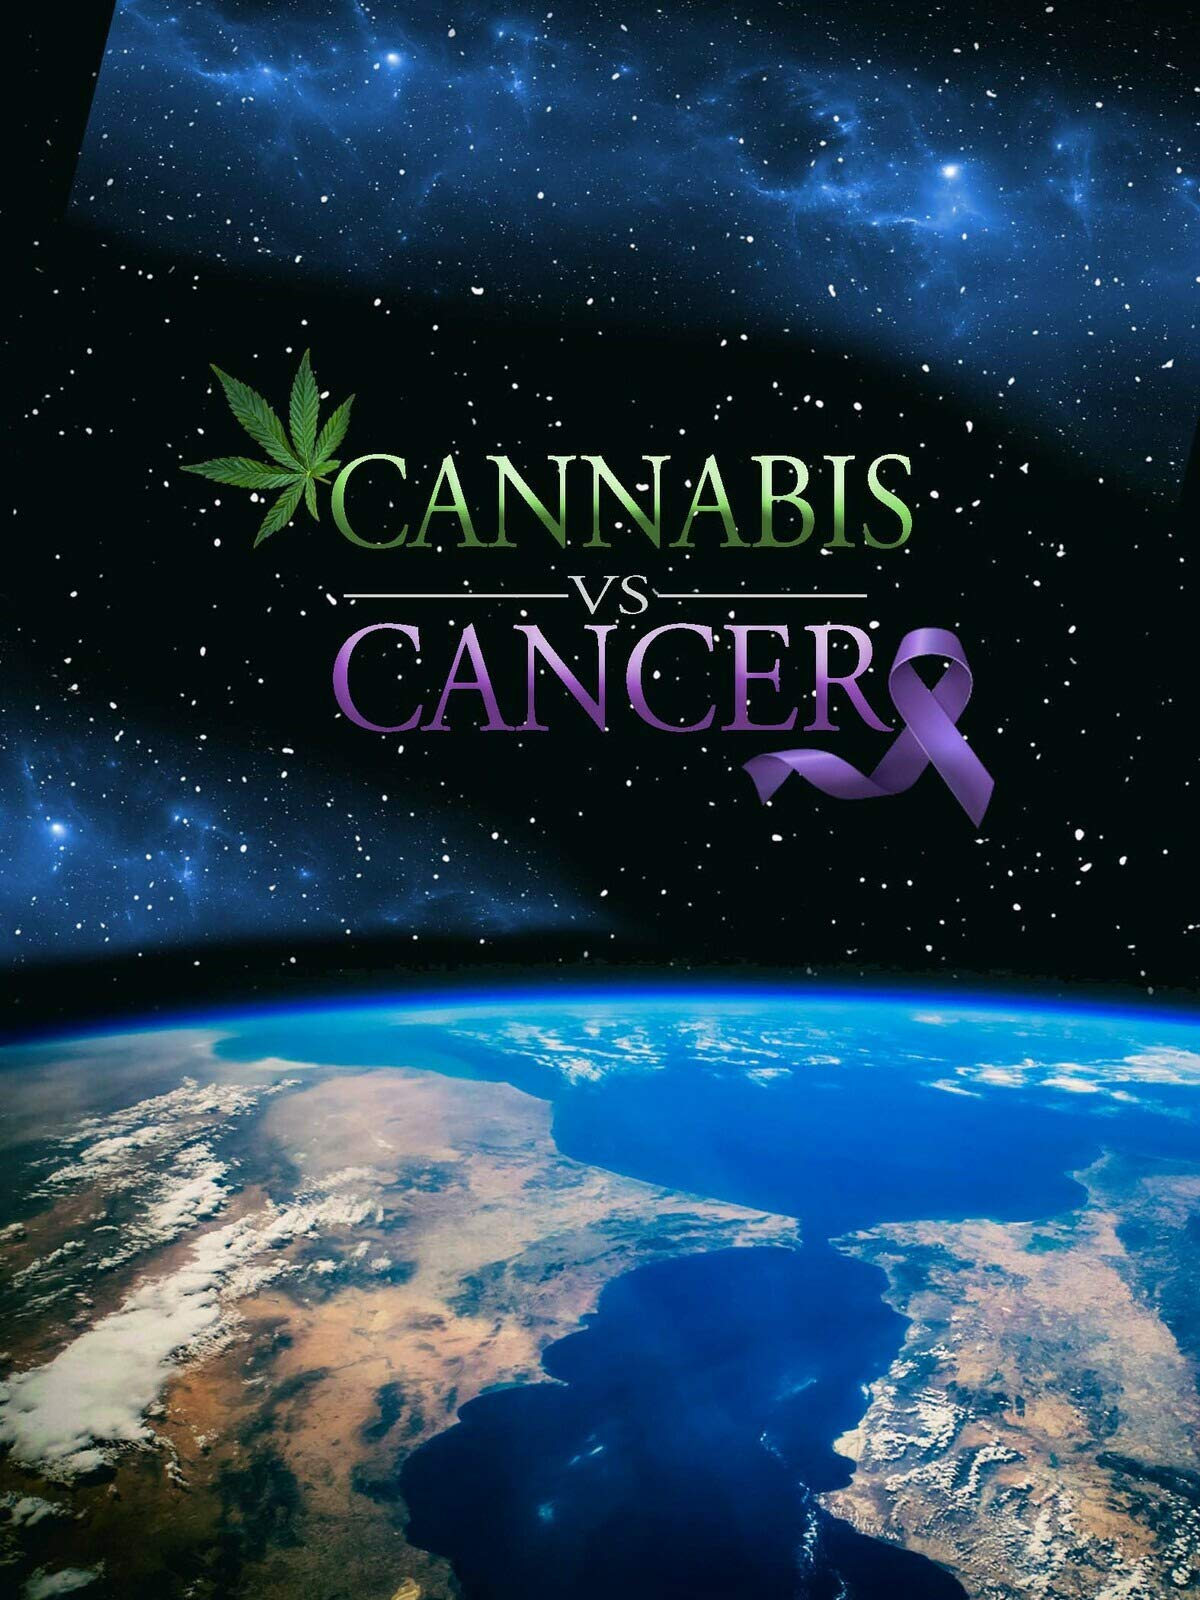 Cannabis v.s Cancer